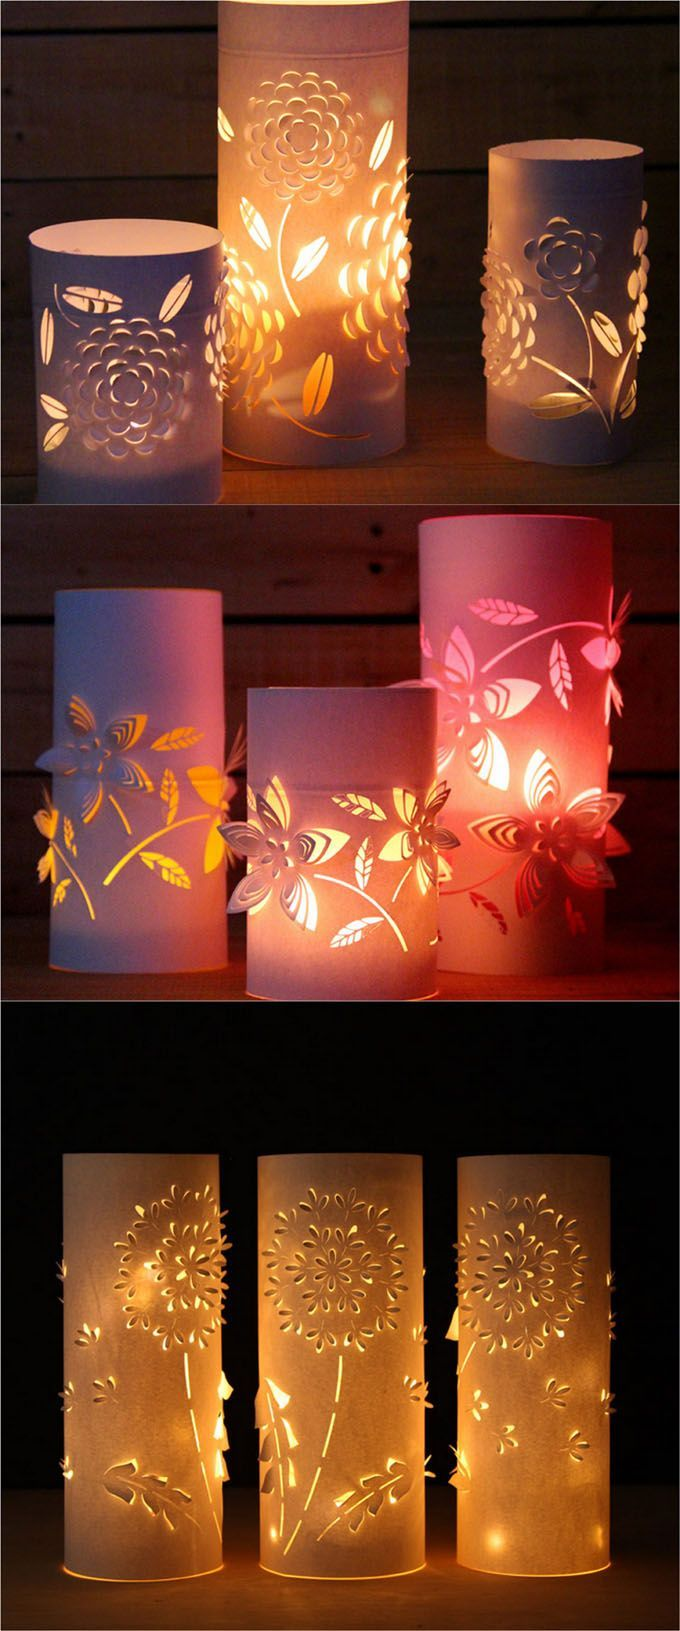 28 Stunning & Easy DIY Outdoor Lights from cedar path lights, mason jar solar lights, chandeliers, to wood lanterns, grapevine spheres, and lots more! - A Piece Of Rainbow